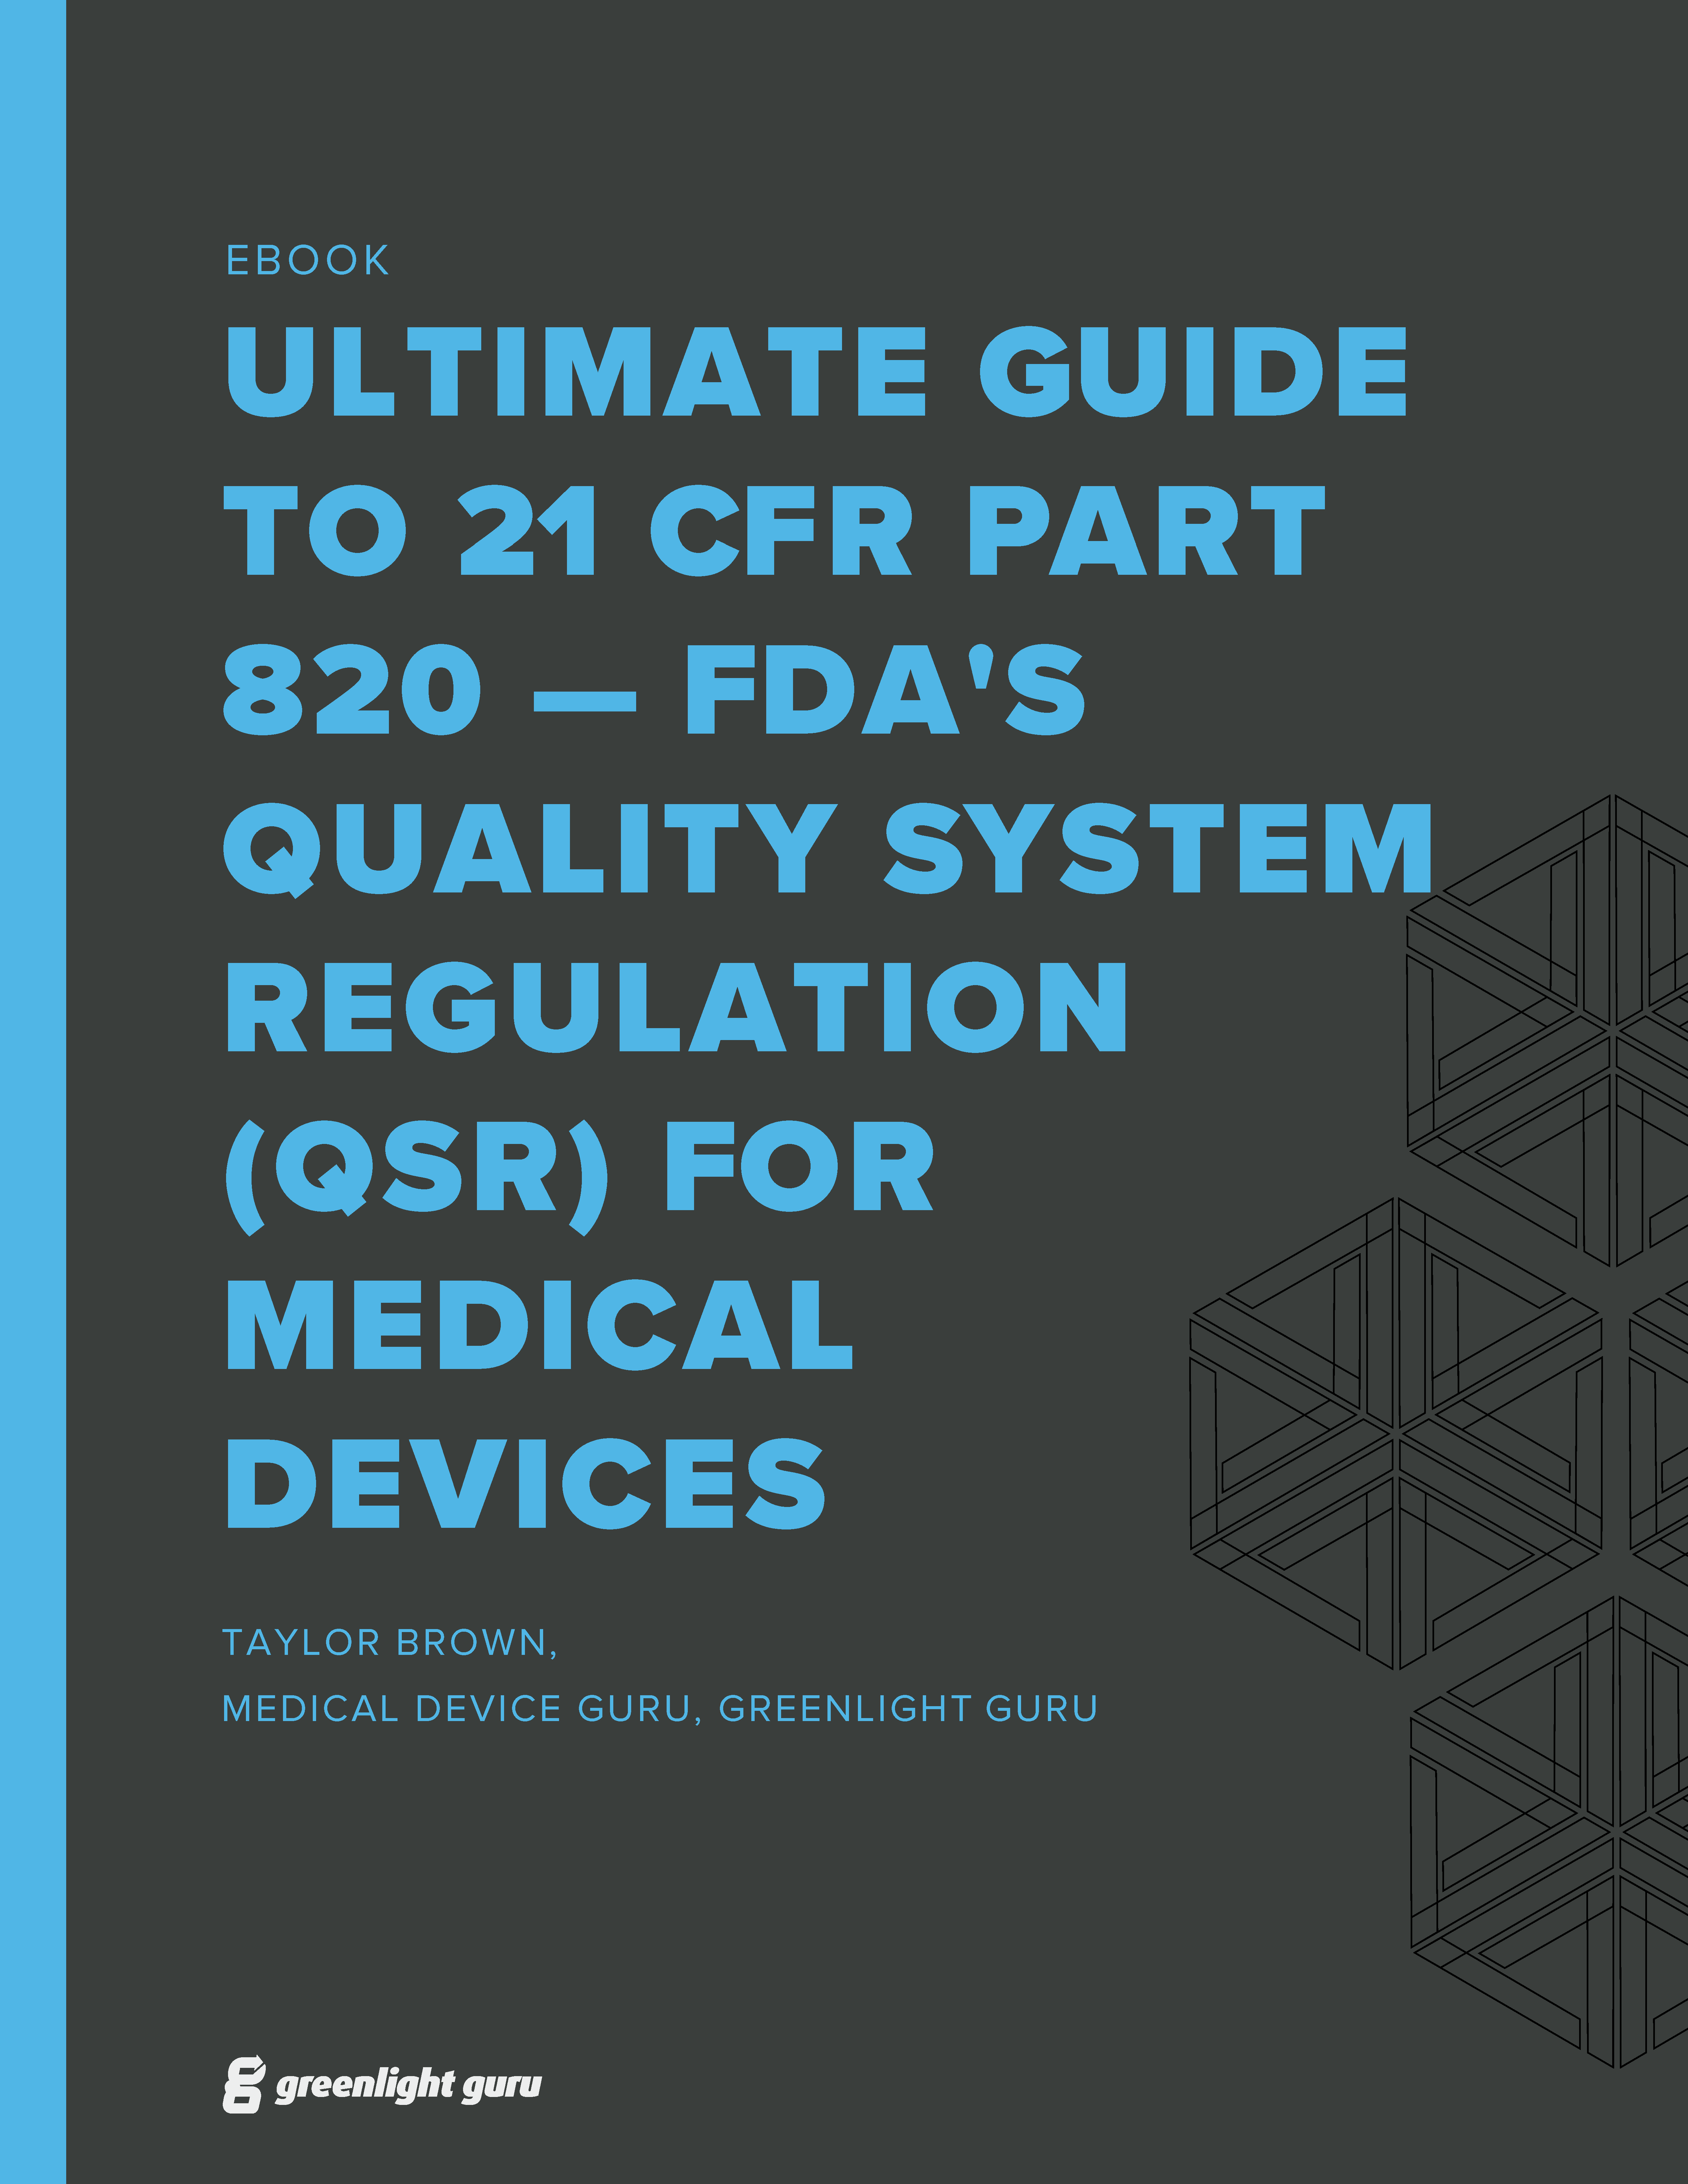 (cover) Ultimate Guide to 21 CFR Part 820 — FDA Quality System Regulation (QSR) for Medical Devices